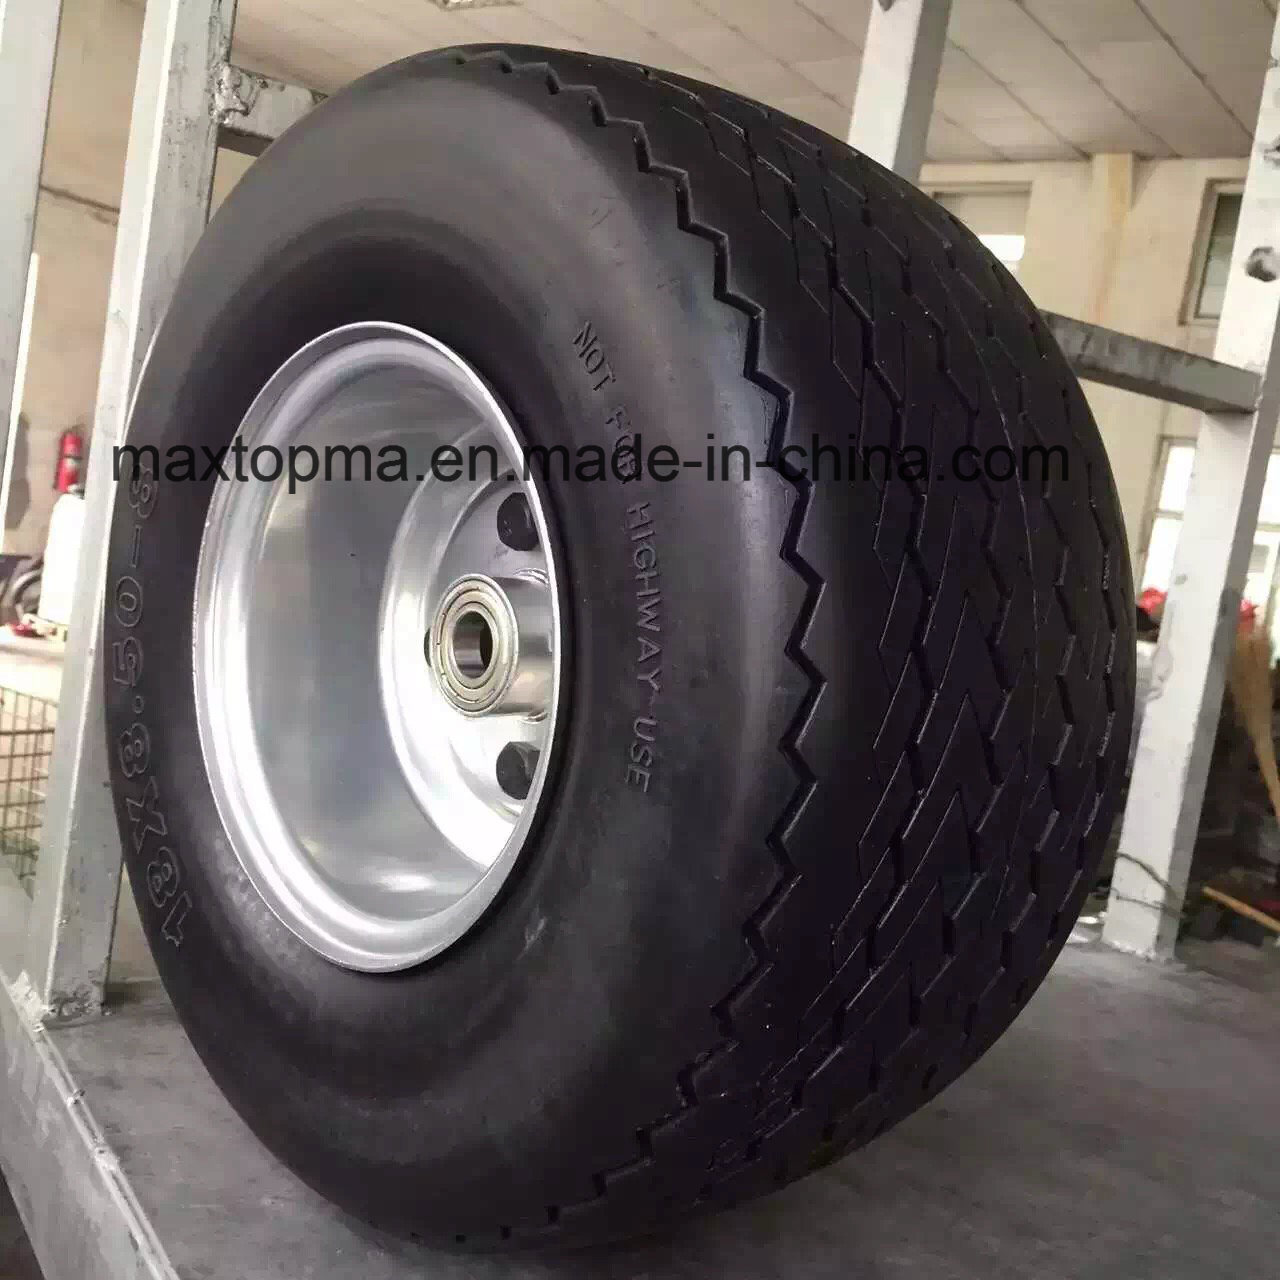 China Maxtop Quality Flat Free PU Foam Wheel